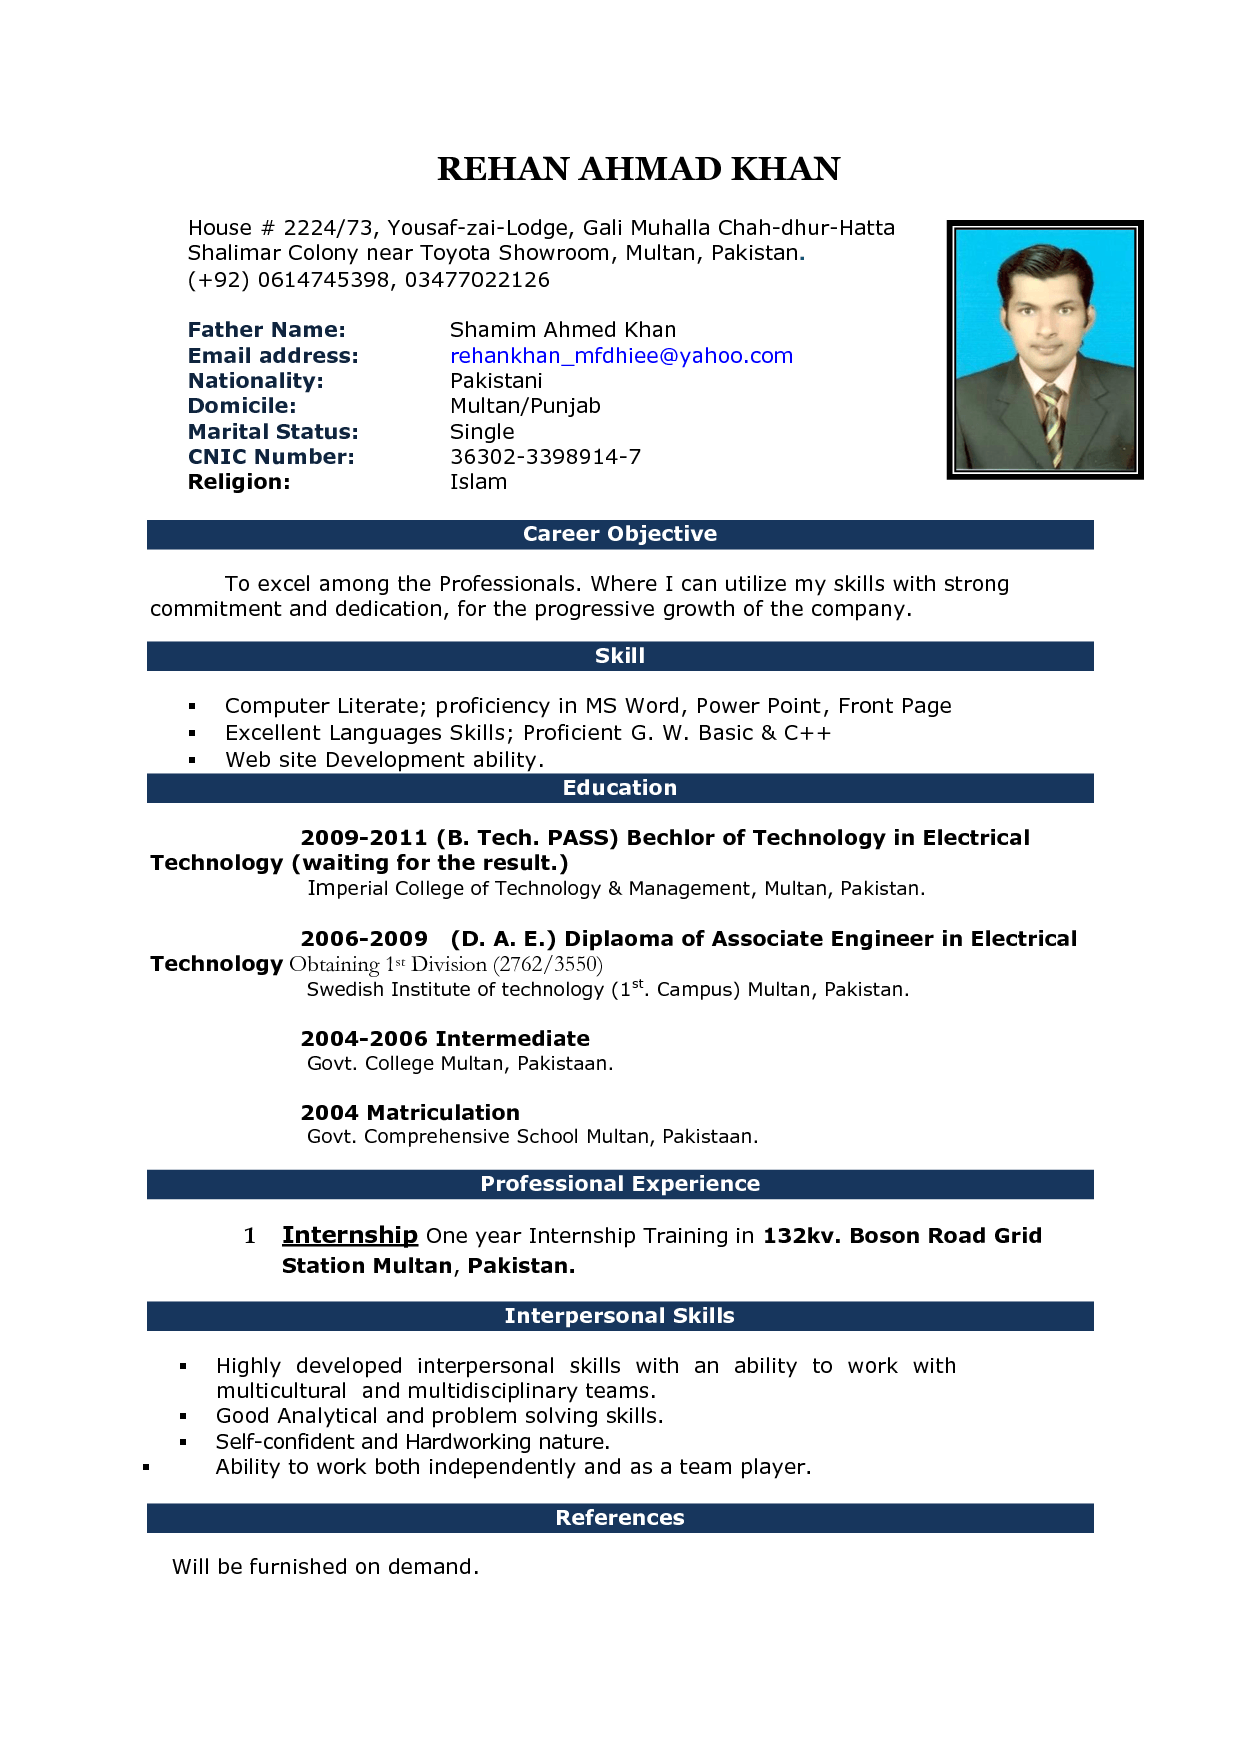 Cv-Sample-Format-In-Ms-Word-resume-formatting-in-word-resume ...